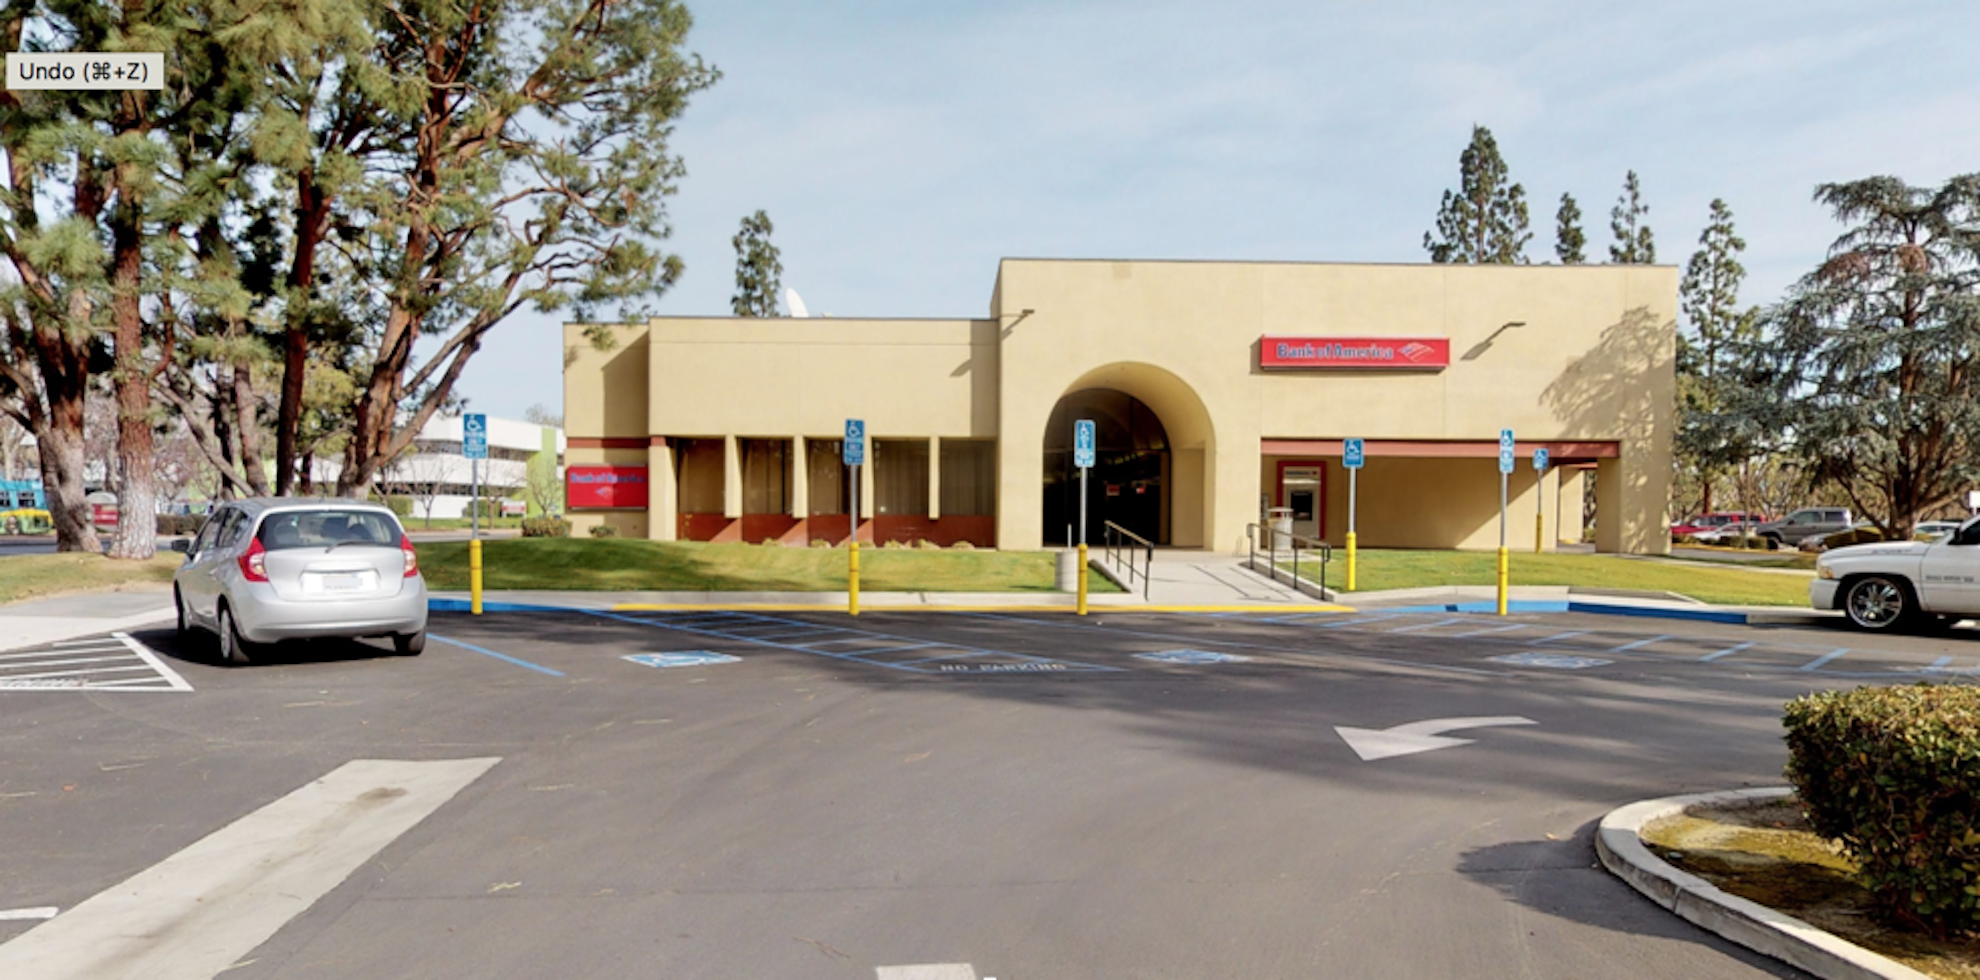 Bank of America financial center with drive-thru ATM | 5021 California Ave, Bakersfield, CA 93309